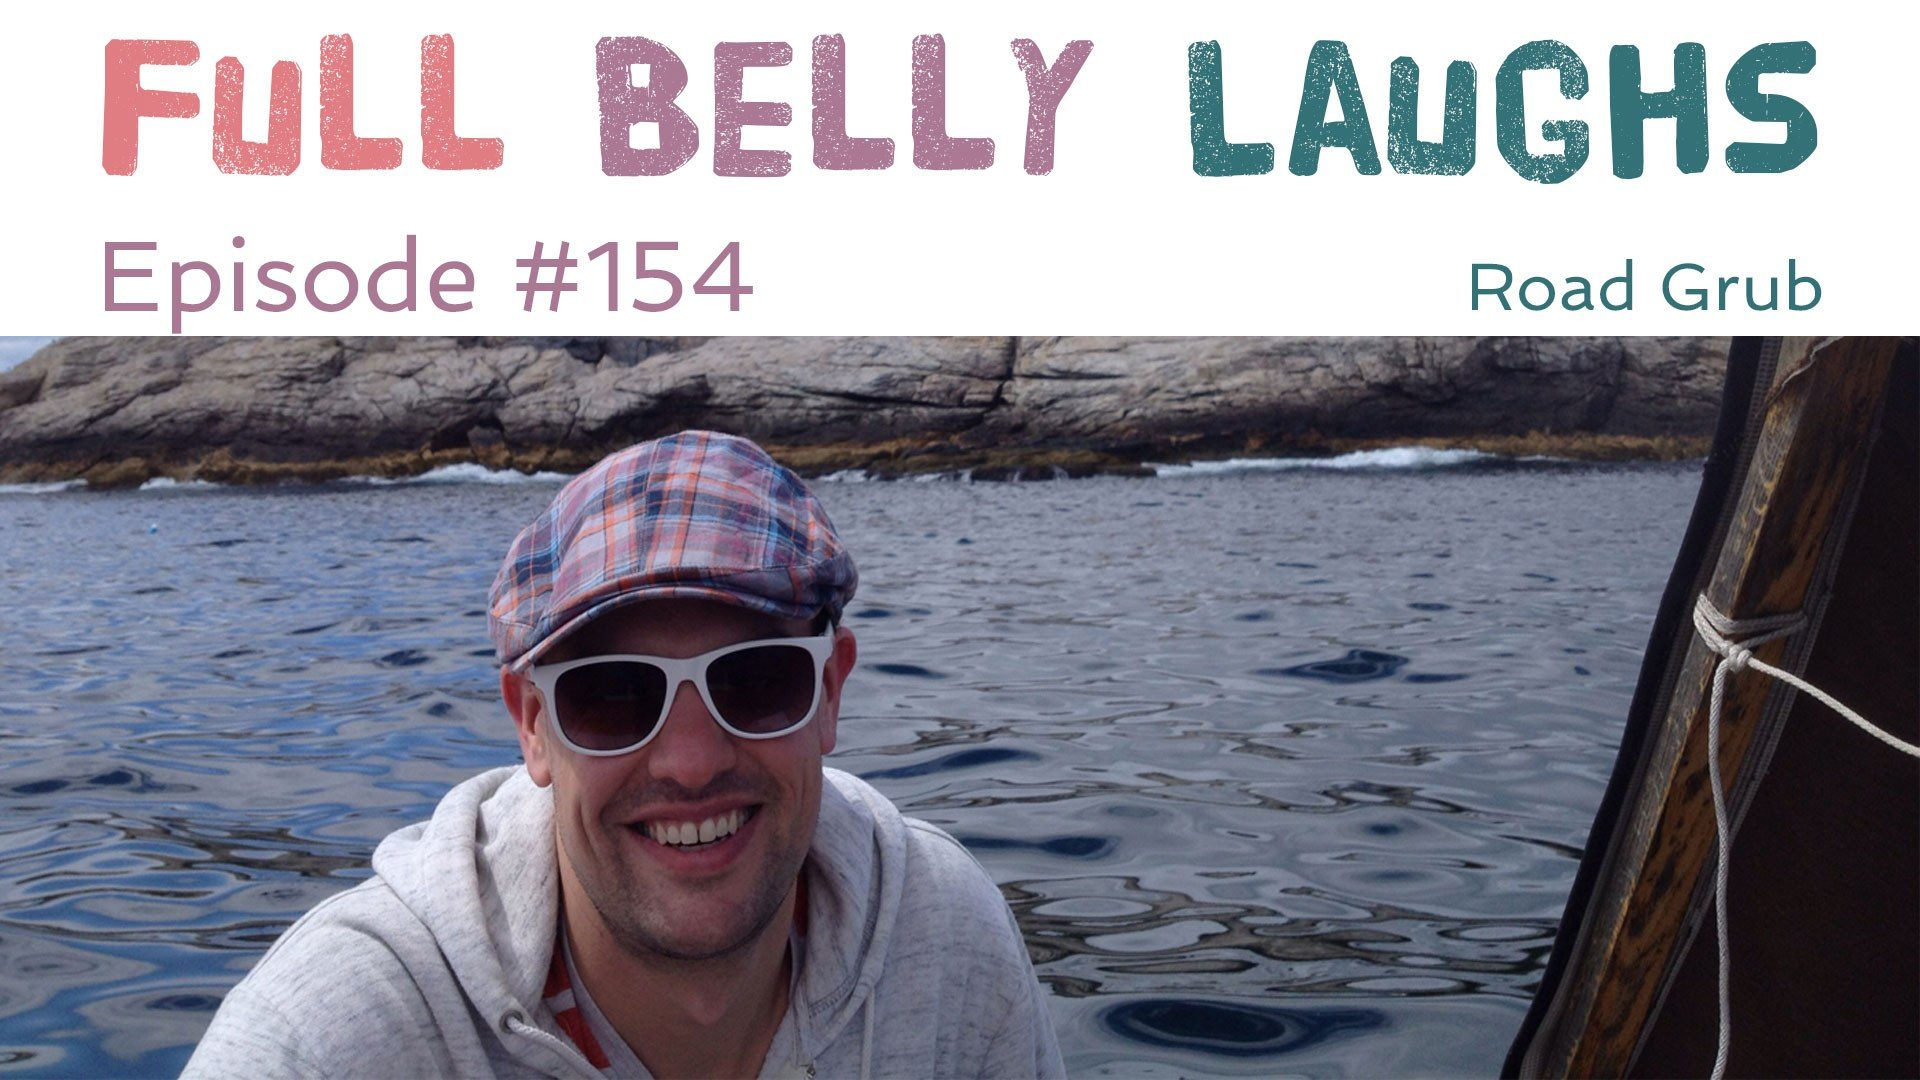 full belly laughs podcast episode 154 road grub audio artwork